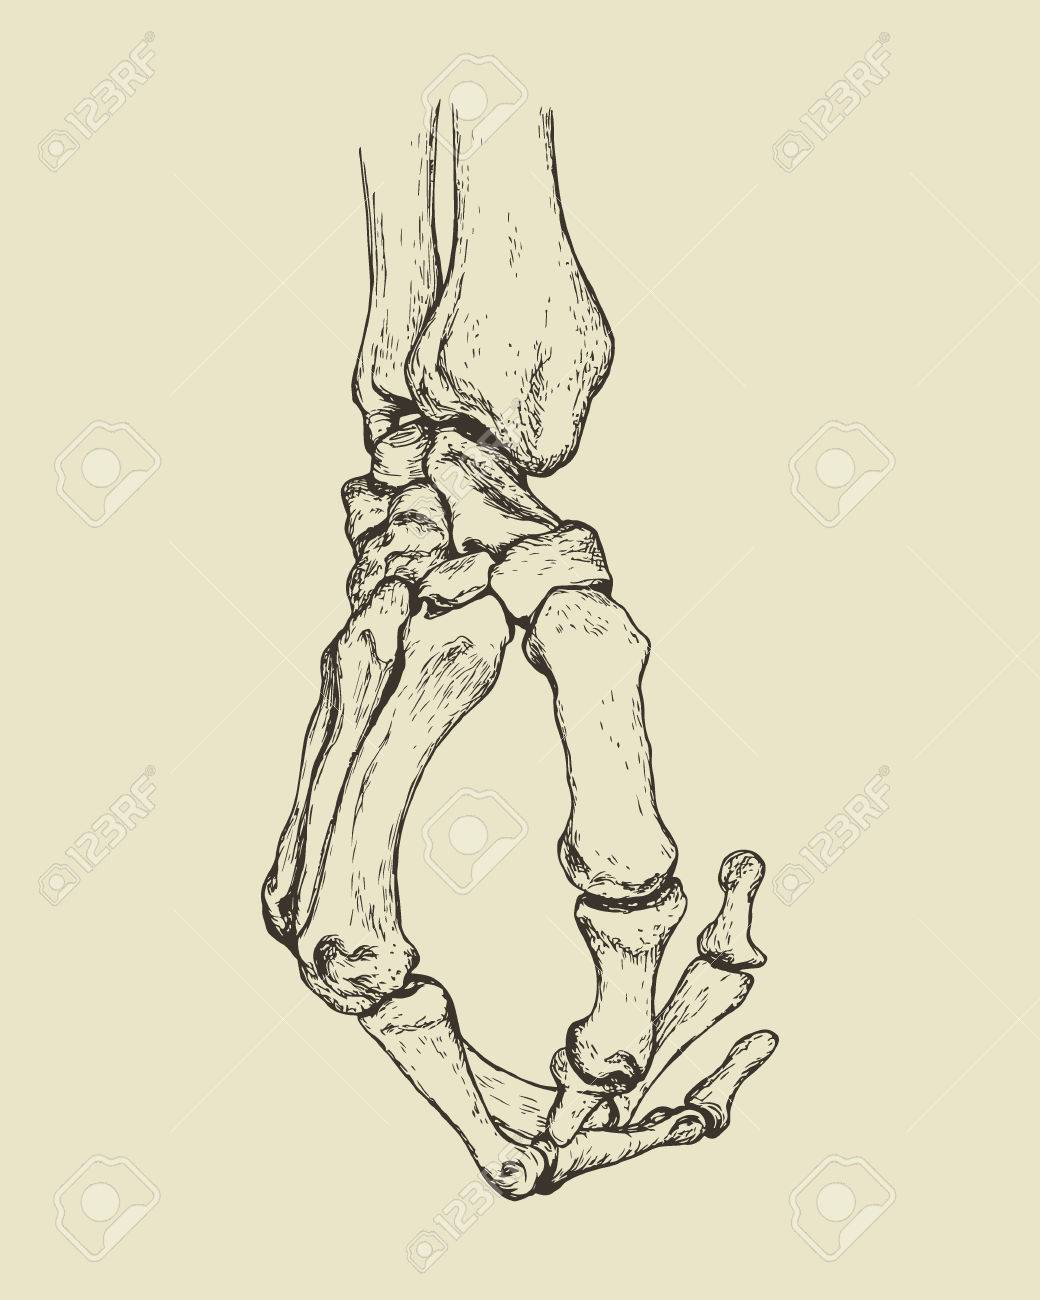 1040x1300 Vector Illustration Of Hand Drawn Hand Skeleton. Anatomical